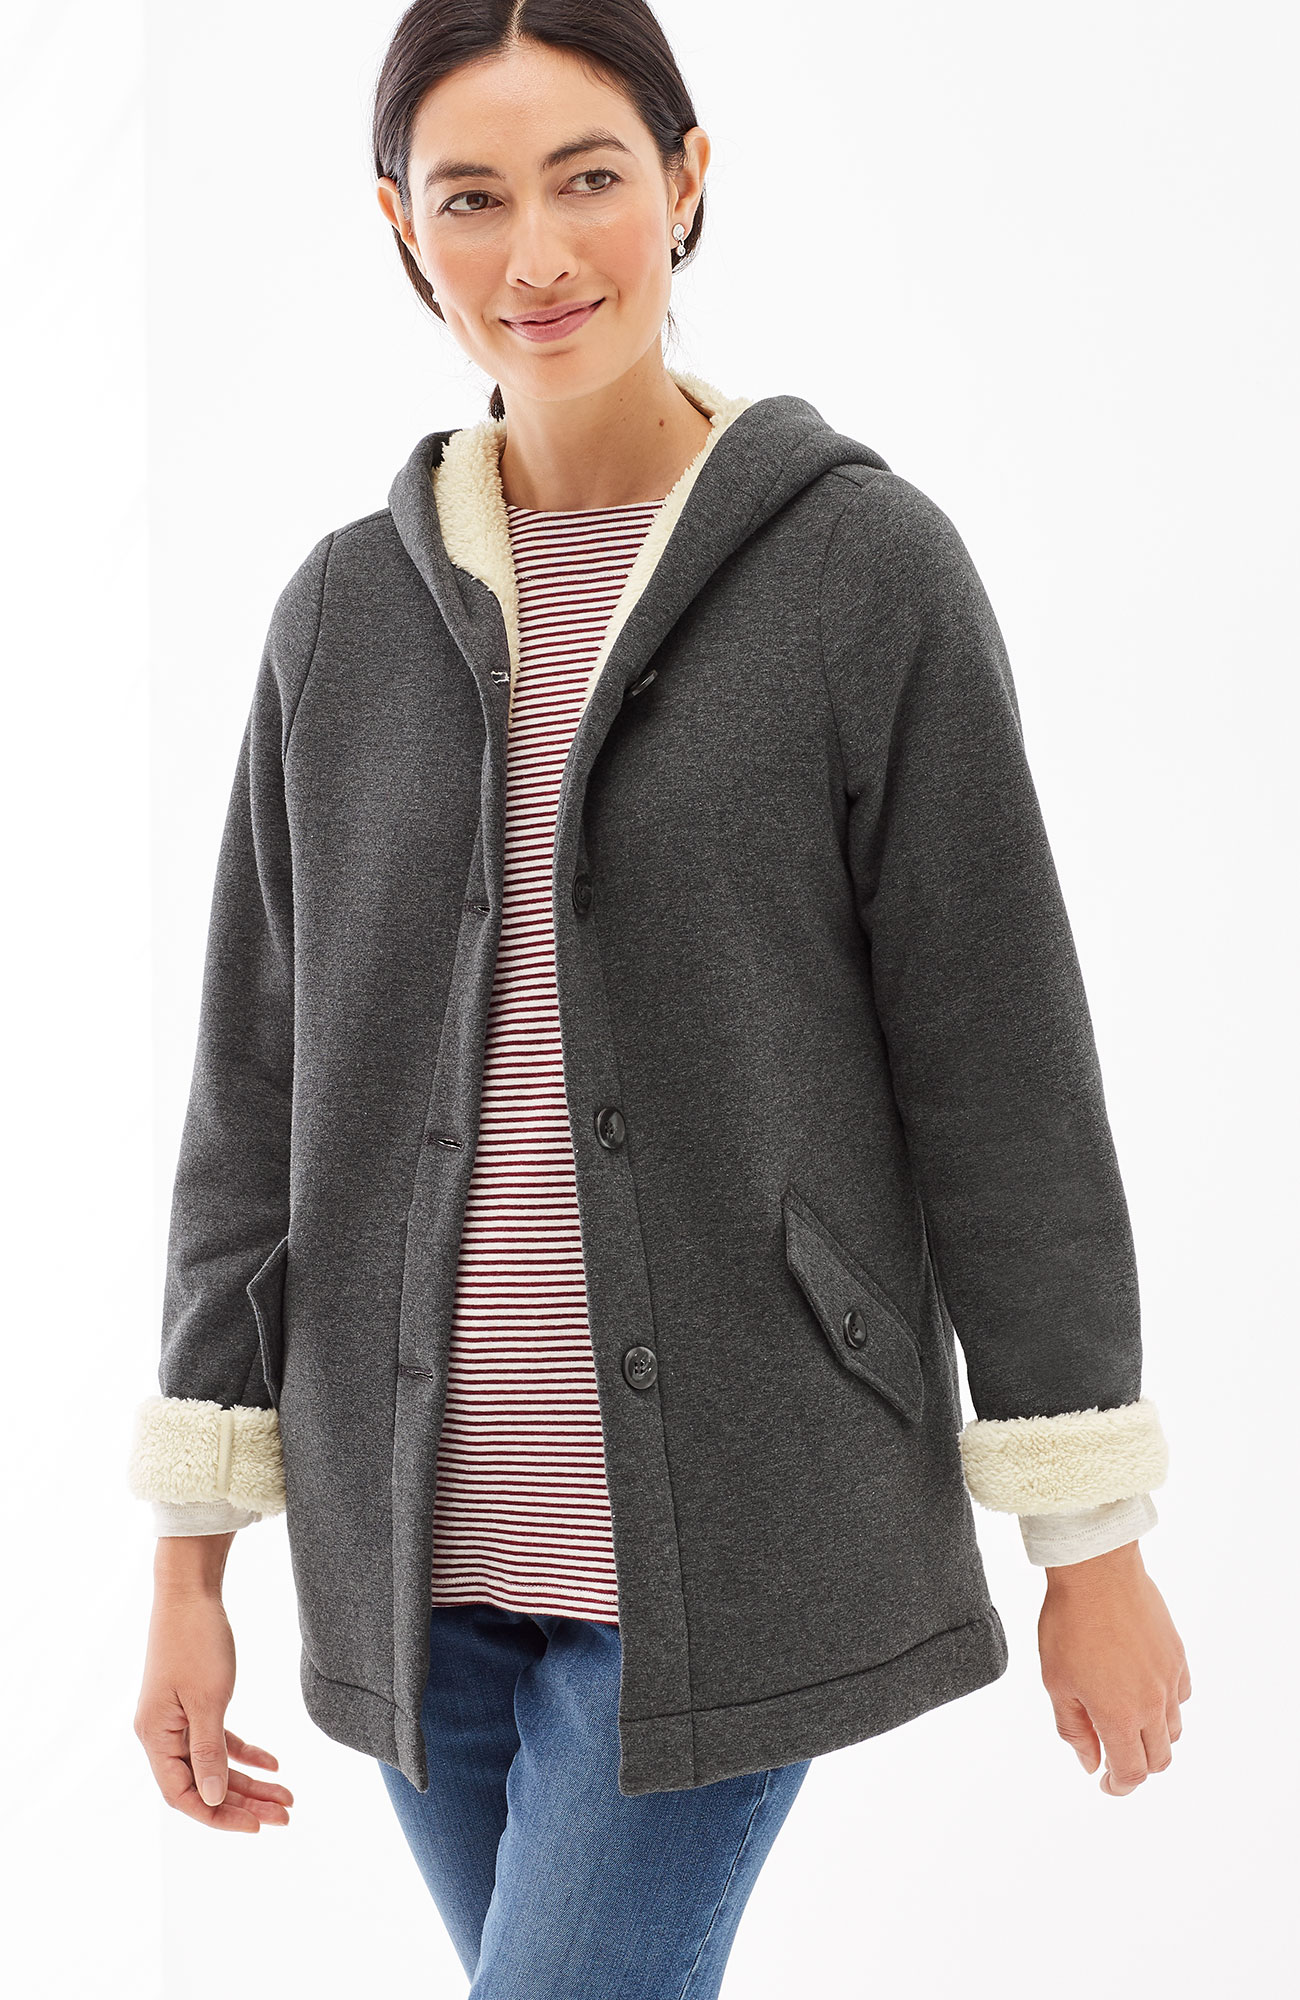 plush-lined knit jacket